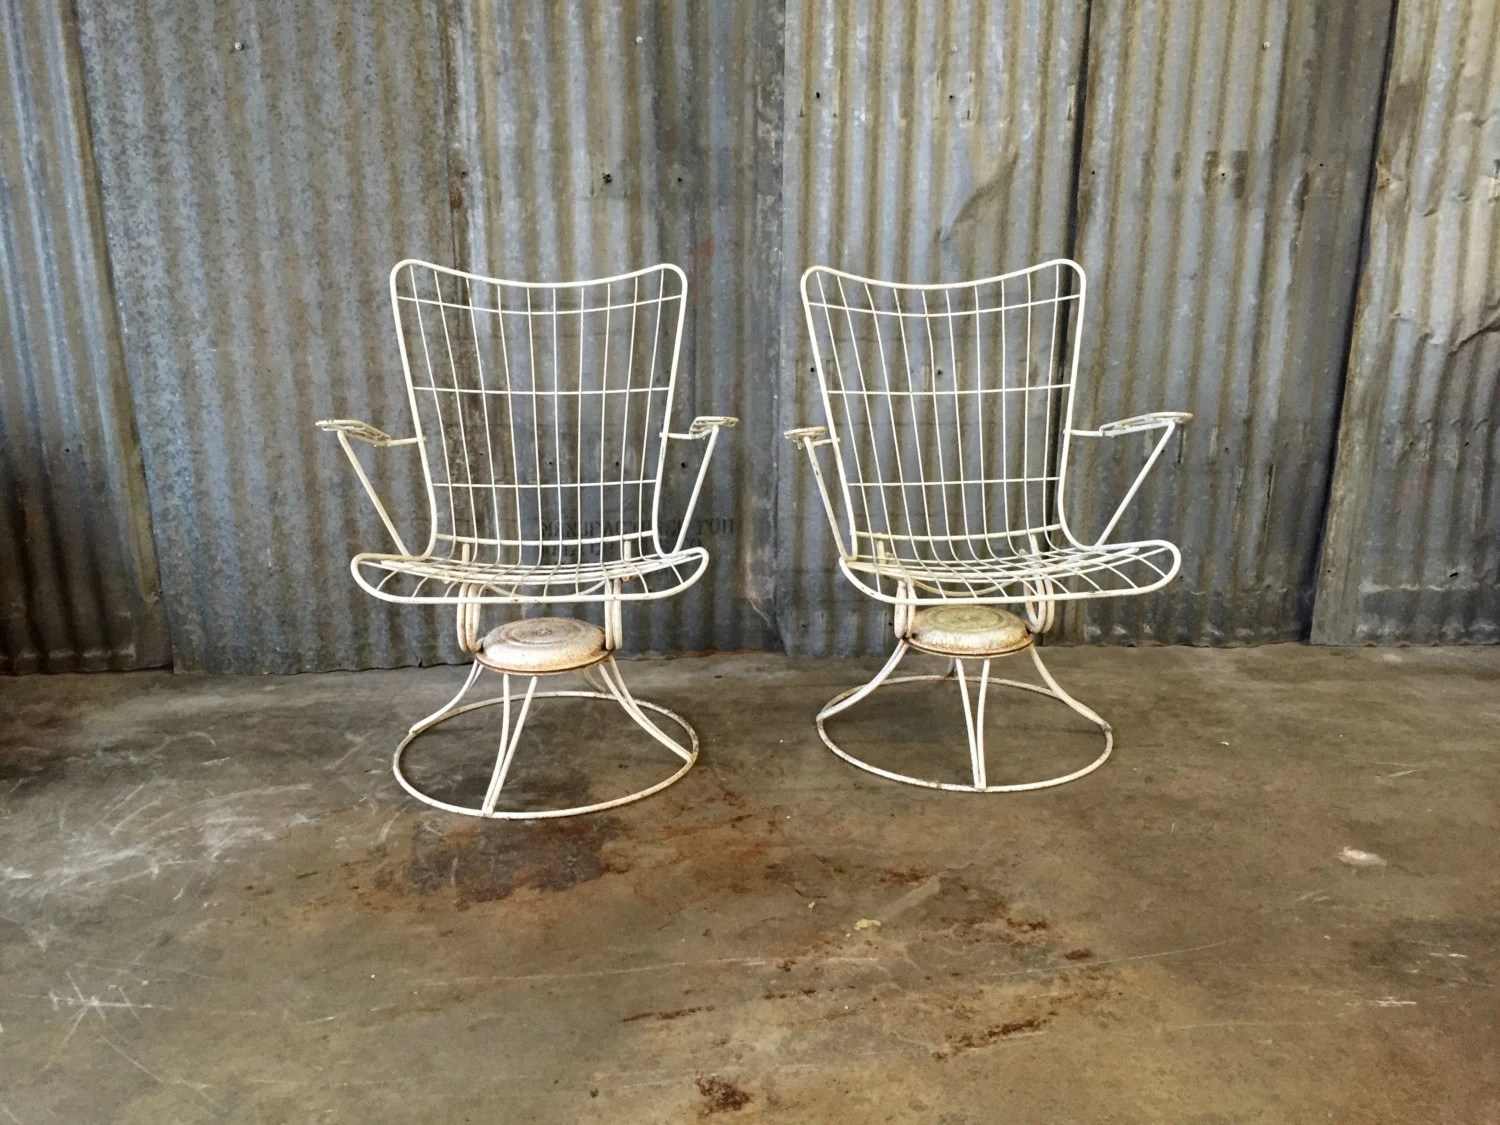 vintage outdoor chairs kidkraft farmhouse table and chair midcentury patio homecrest rocking